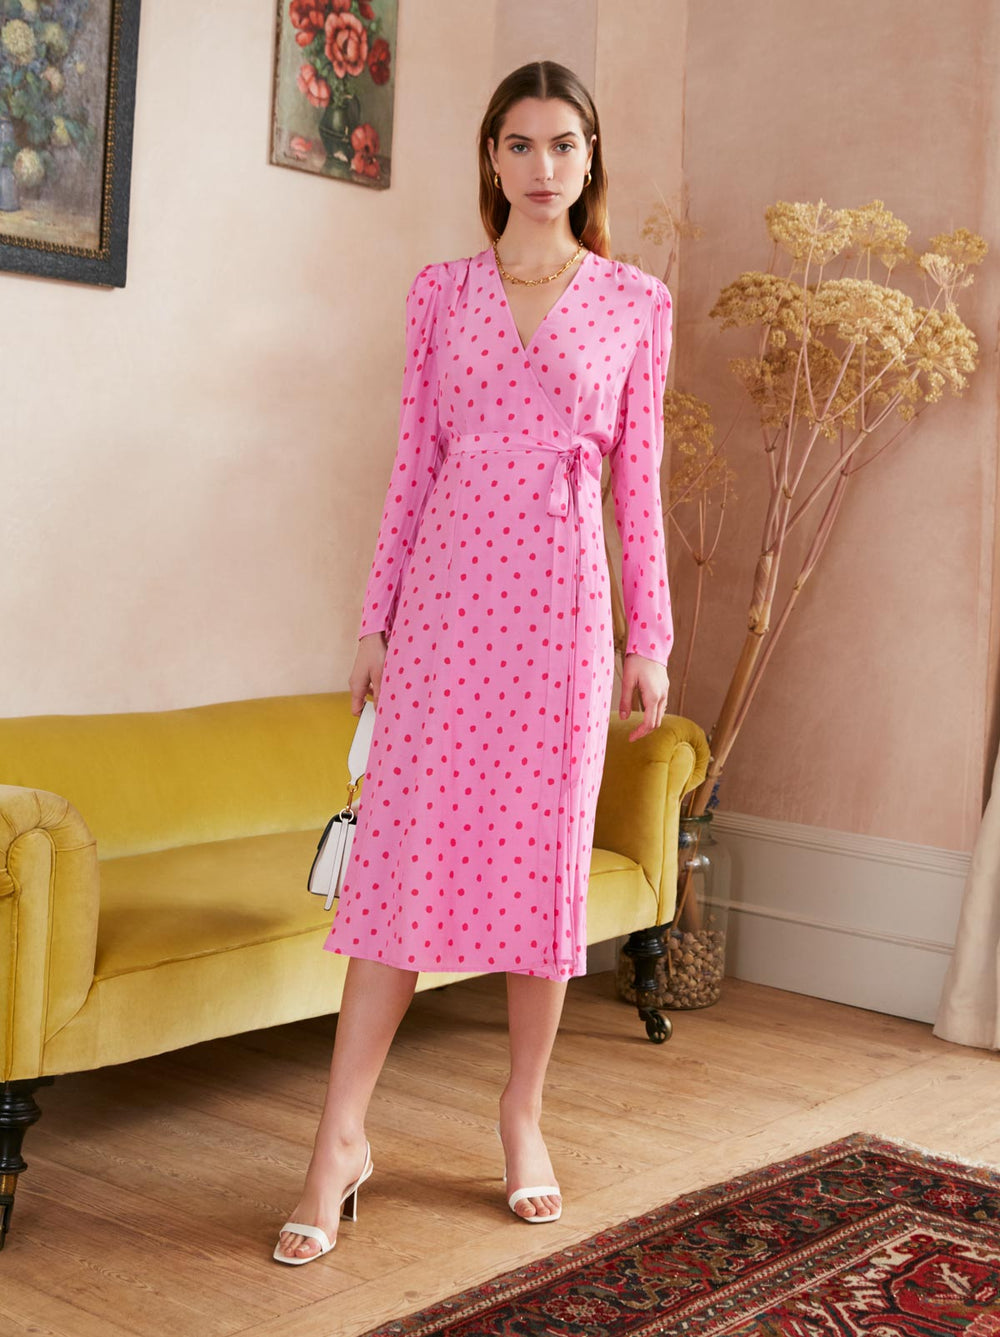 Stephanie Pink Polka Dot Wrap Dress by KITRI Studio